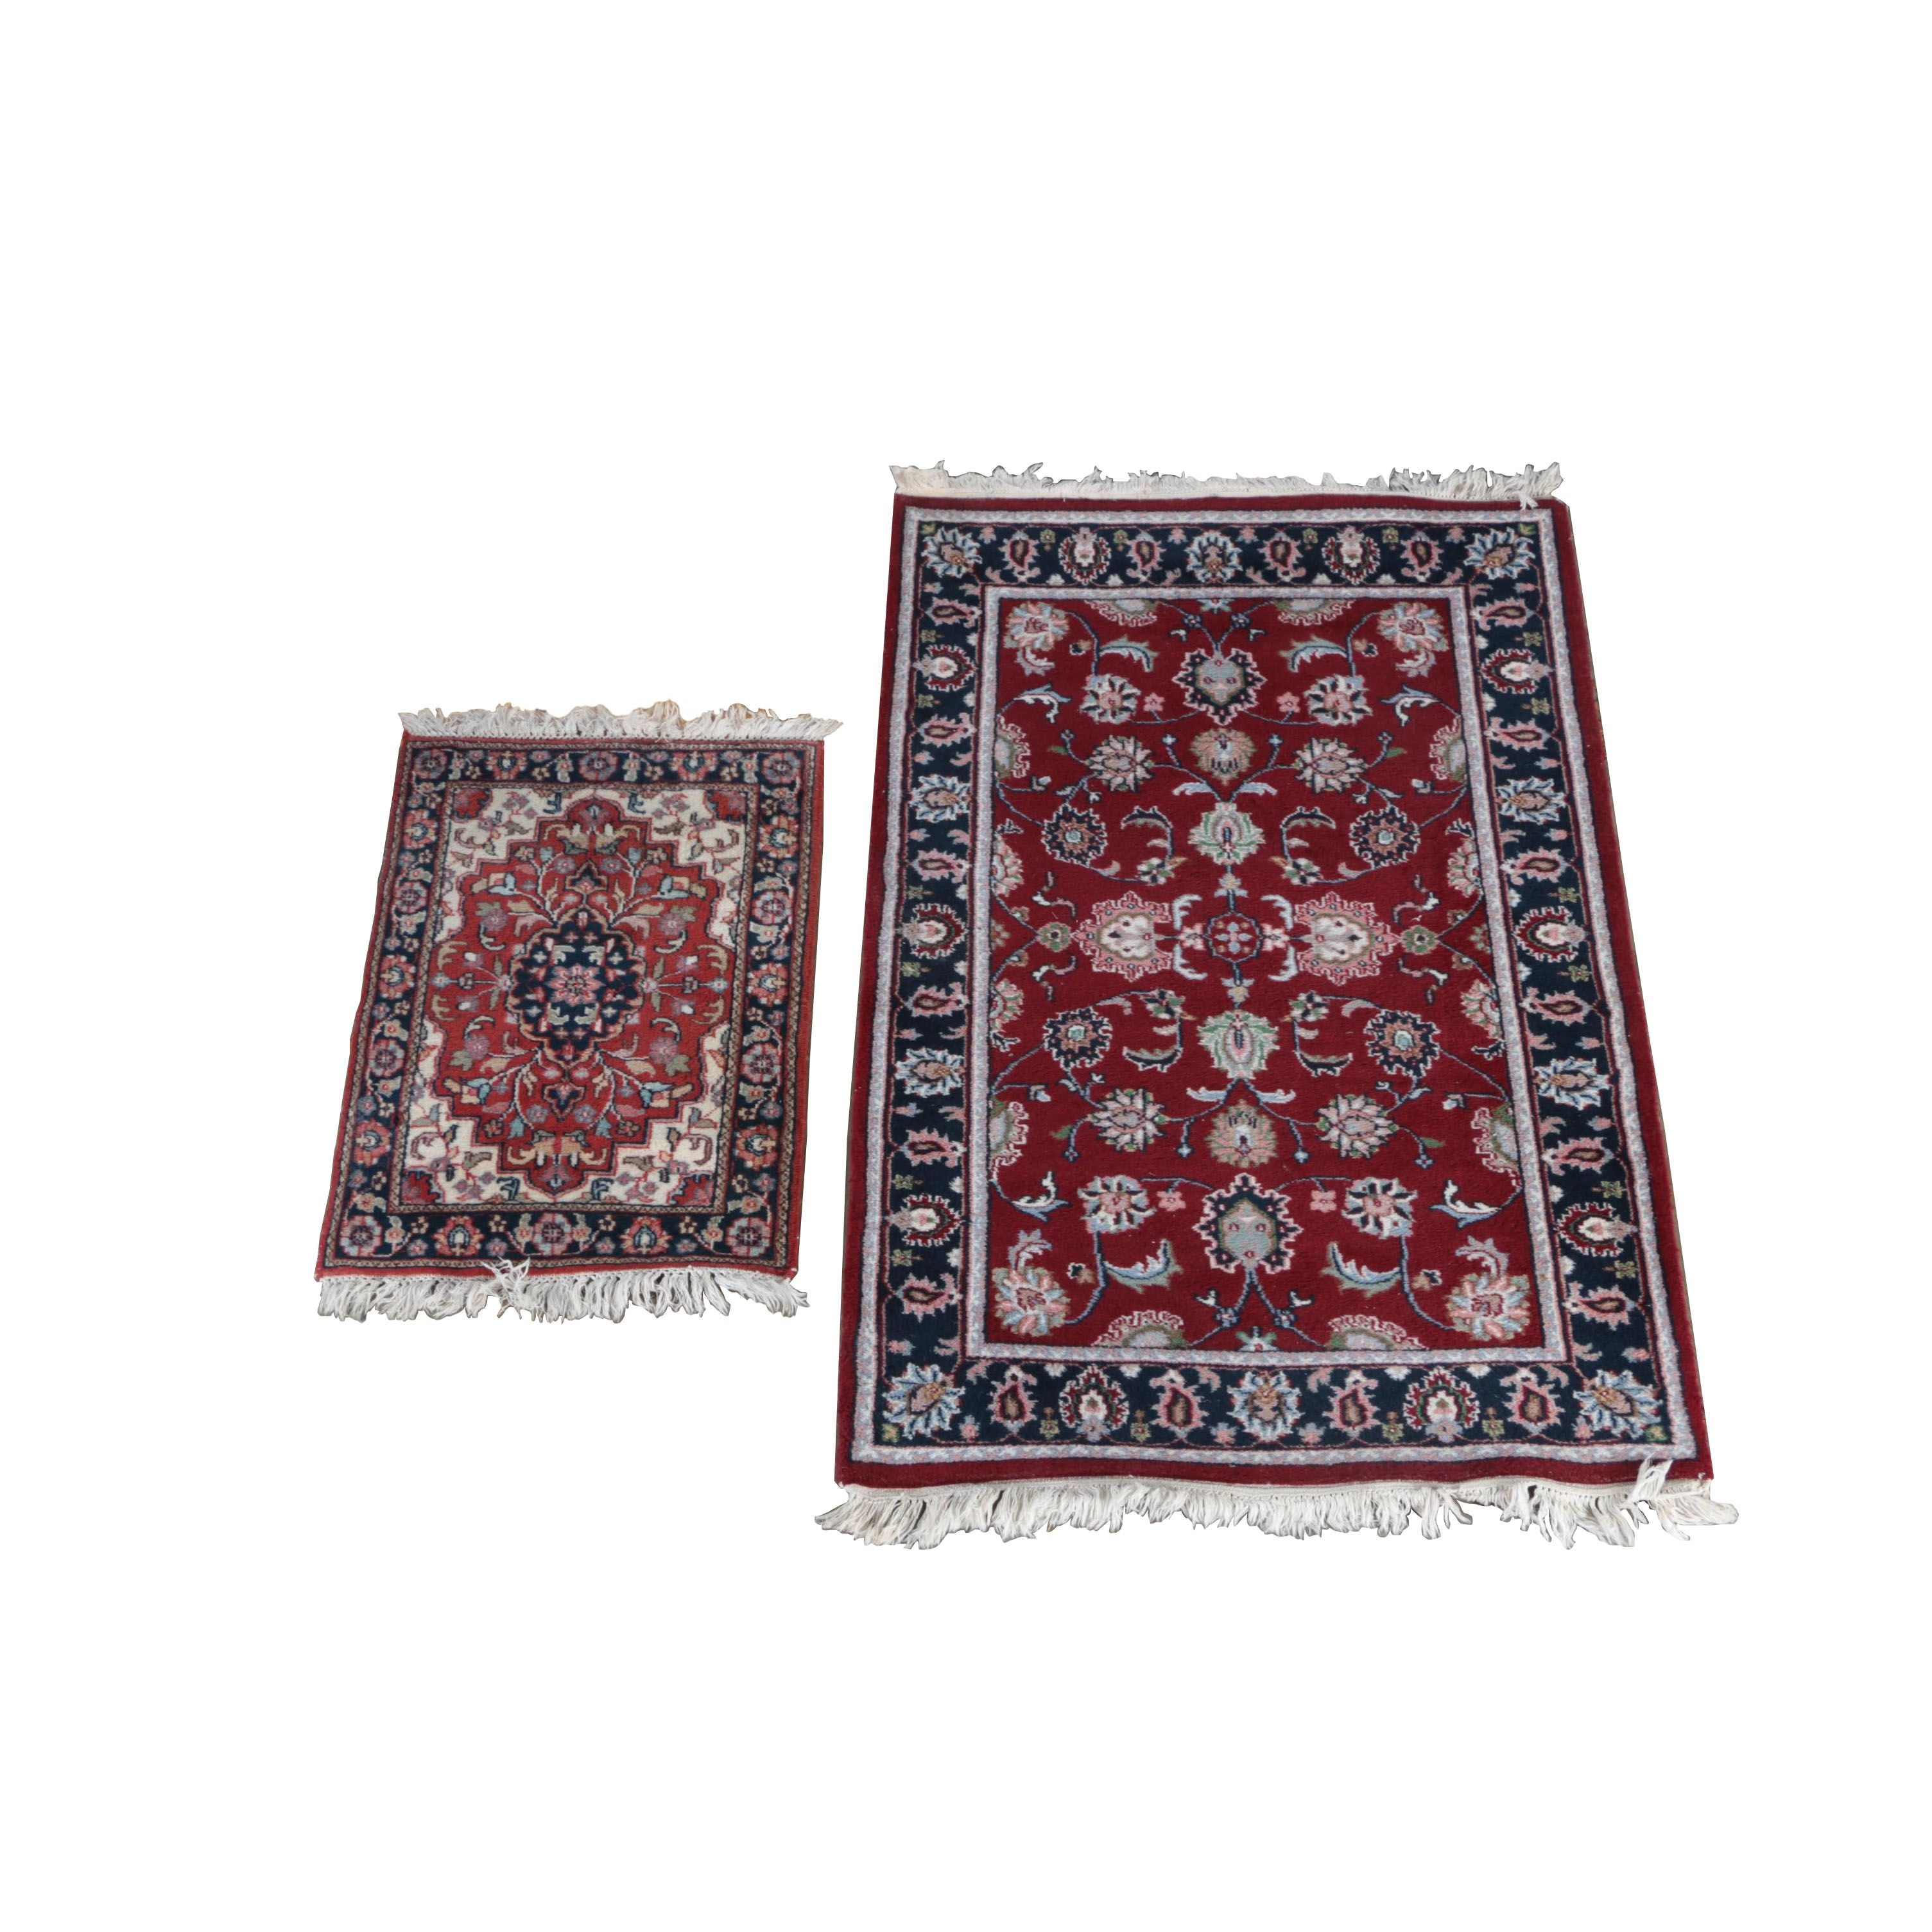 Hand-Knotted Indo-Persian Wool Accent Rugs